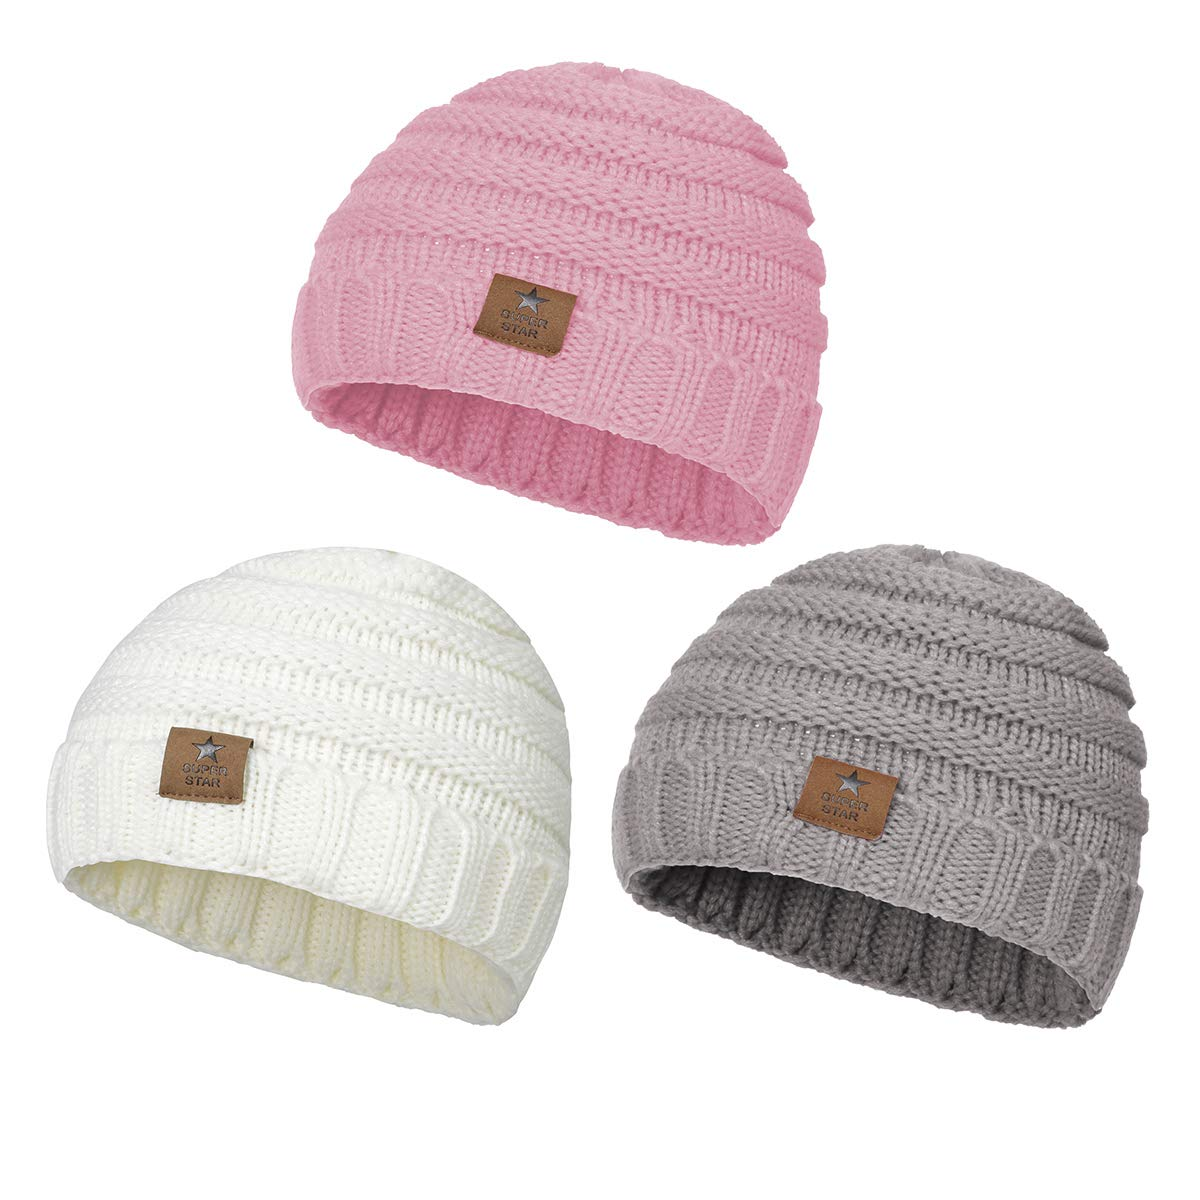 Zando Baby Beanies For Girls Winter Caps Warm Infant Toddler Children's Beanie Knit Hats Boys 0-4 Years Old 3 Pack:White,Grey,Pink by Zando